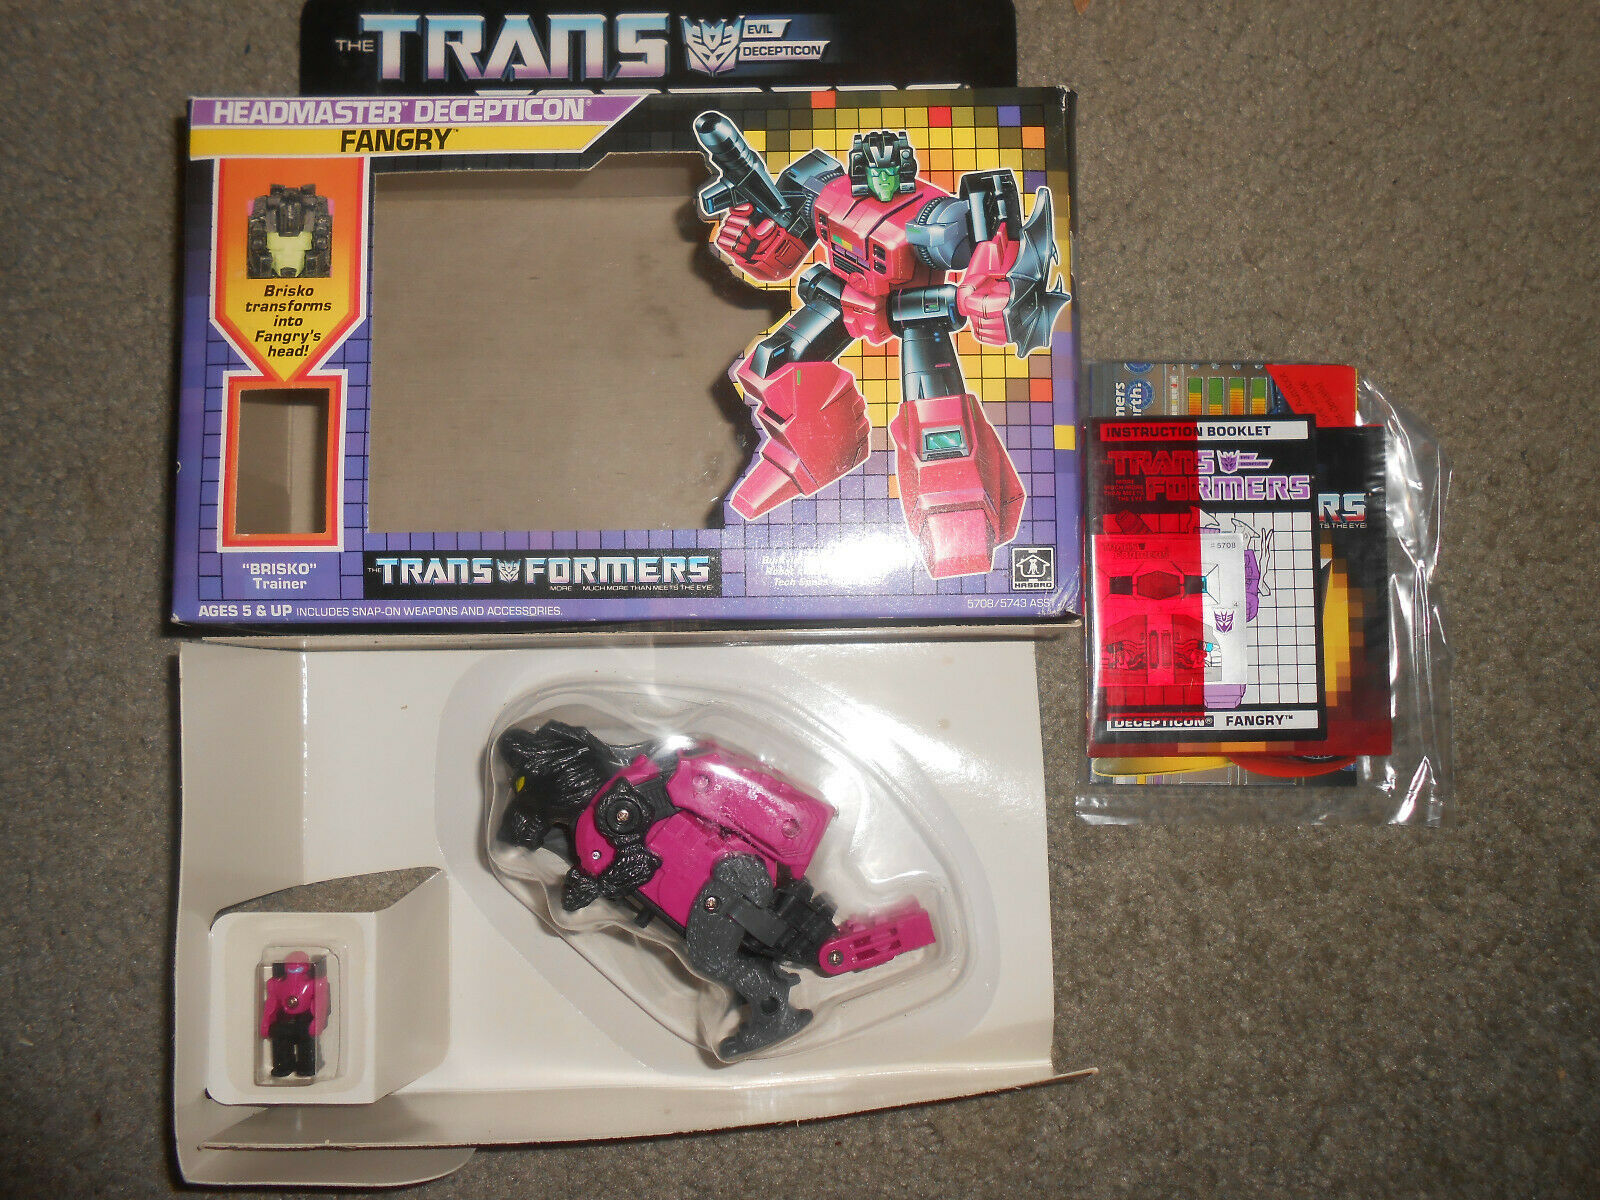 G1 transformers Fangry Sealed on the bubble AFA it